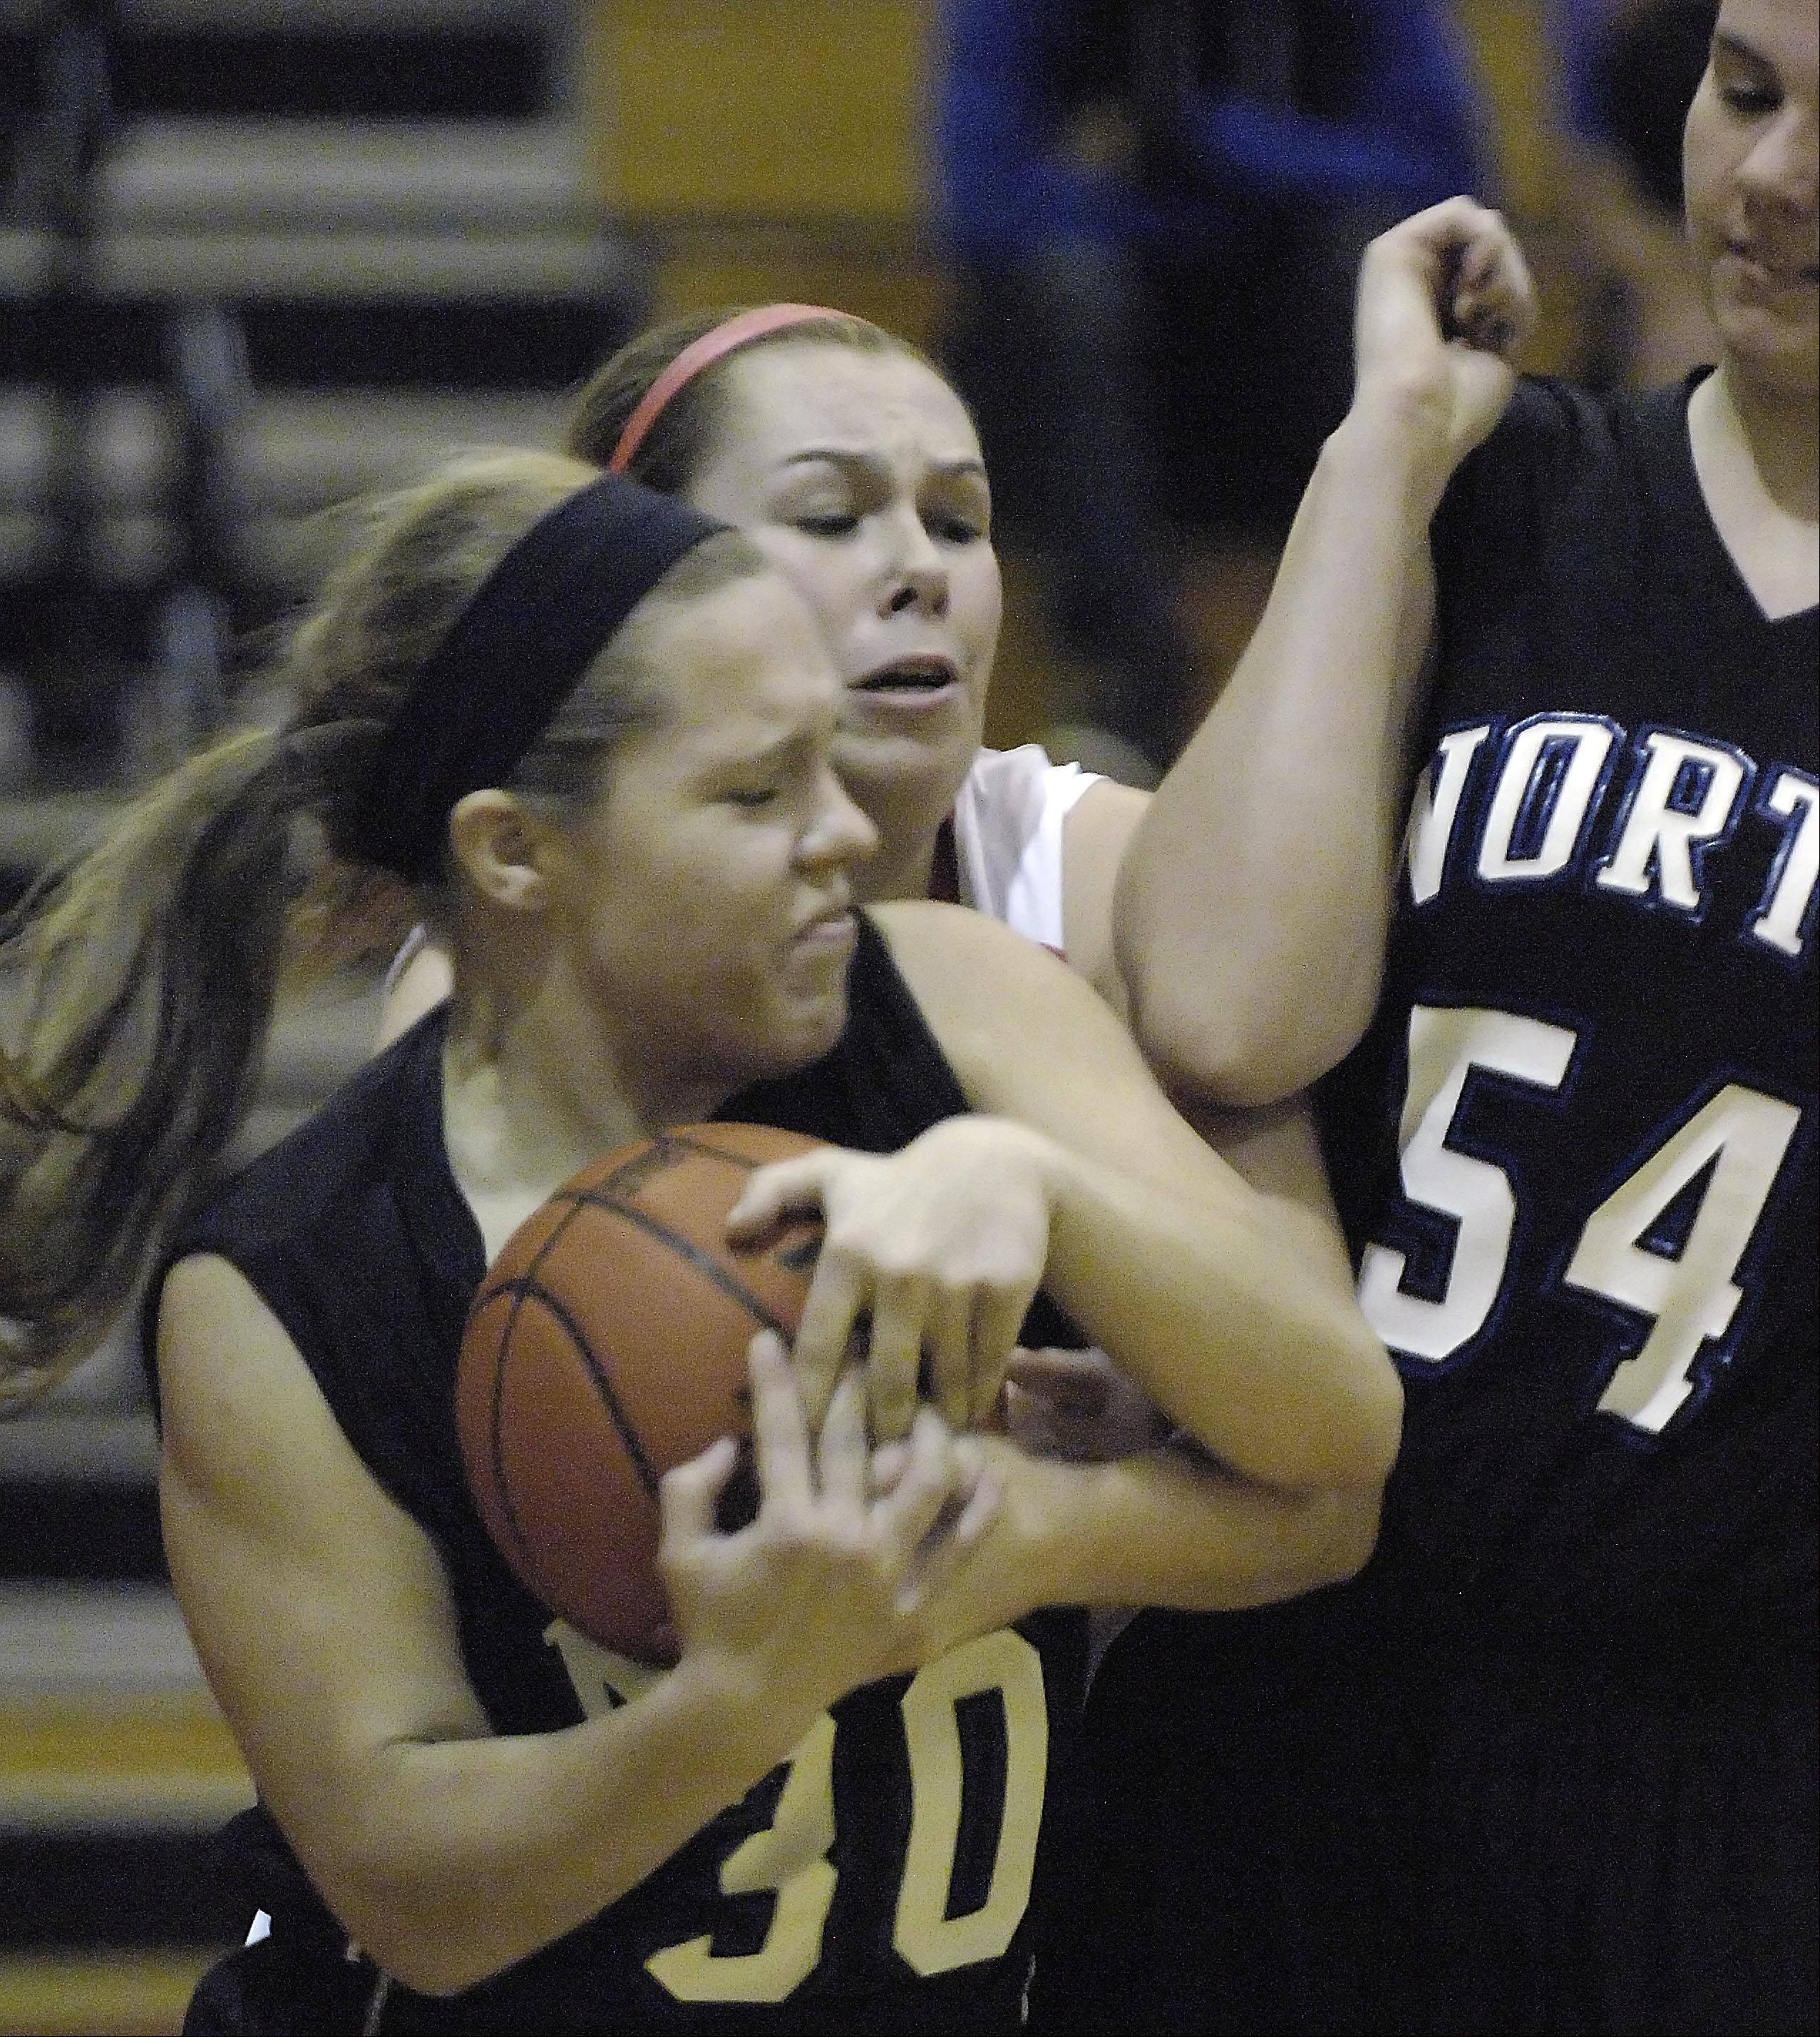 St. Charles North's Ava Tarka and Batavia's Erin Bayram struggle for control of the ball.